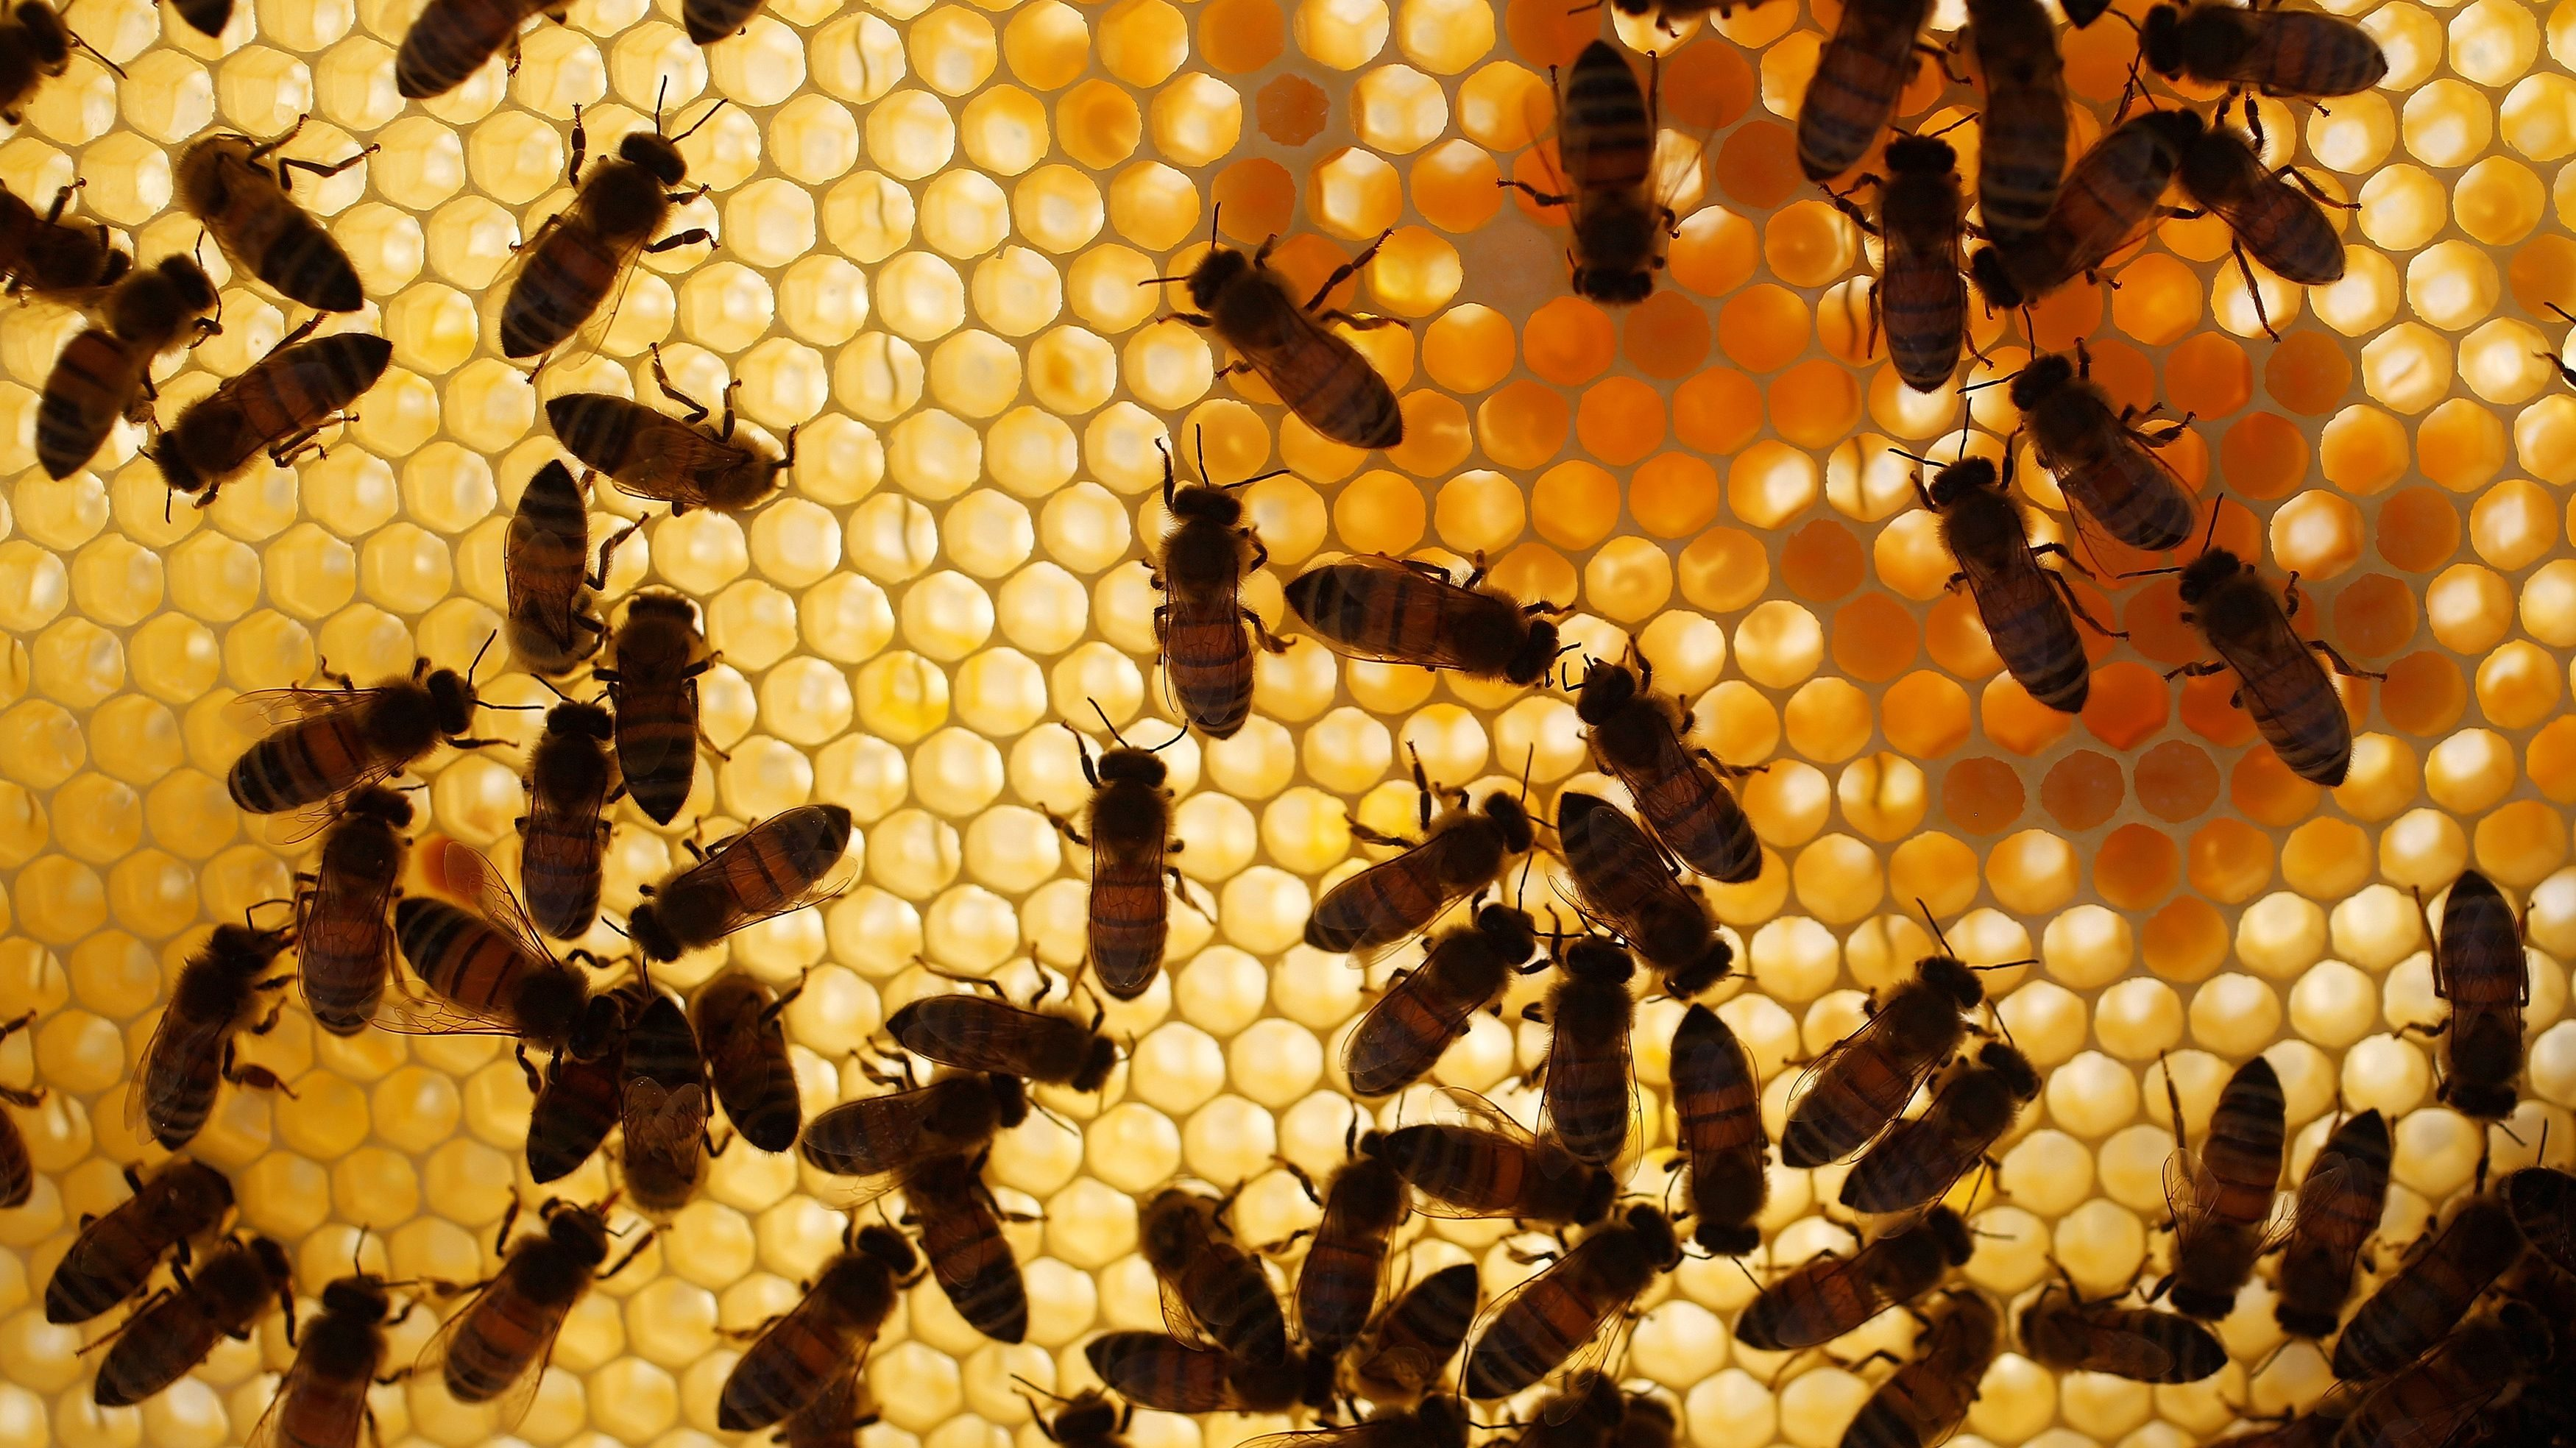 Bees join an elite group of species that understand the concept of zero